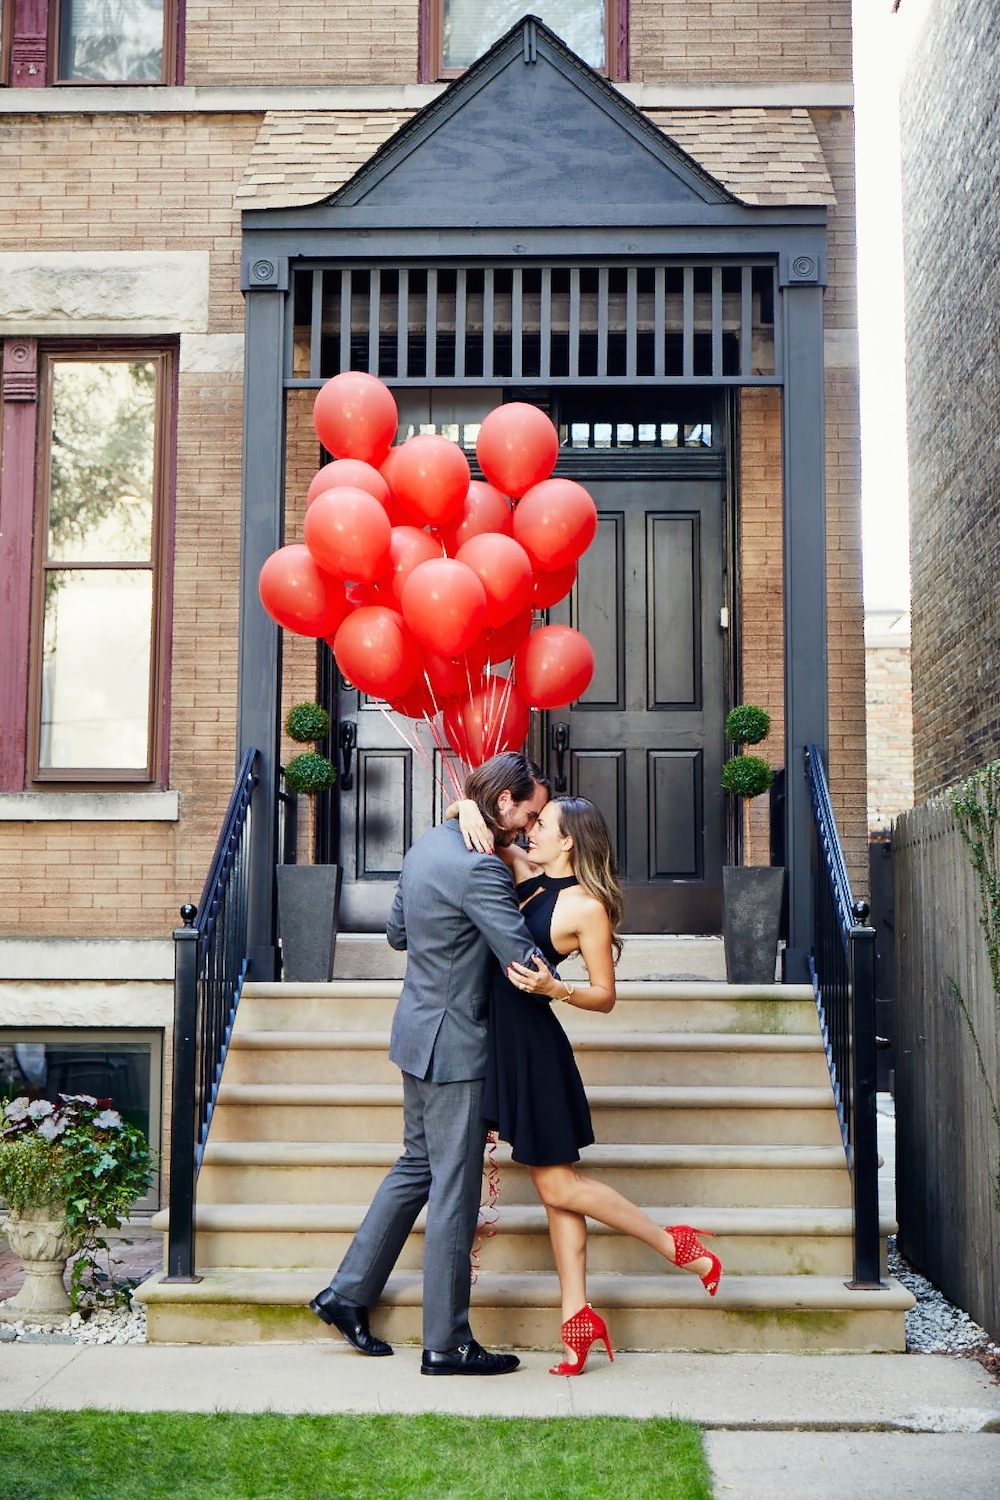 Couple-in-love-balloons-doorway.jpg